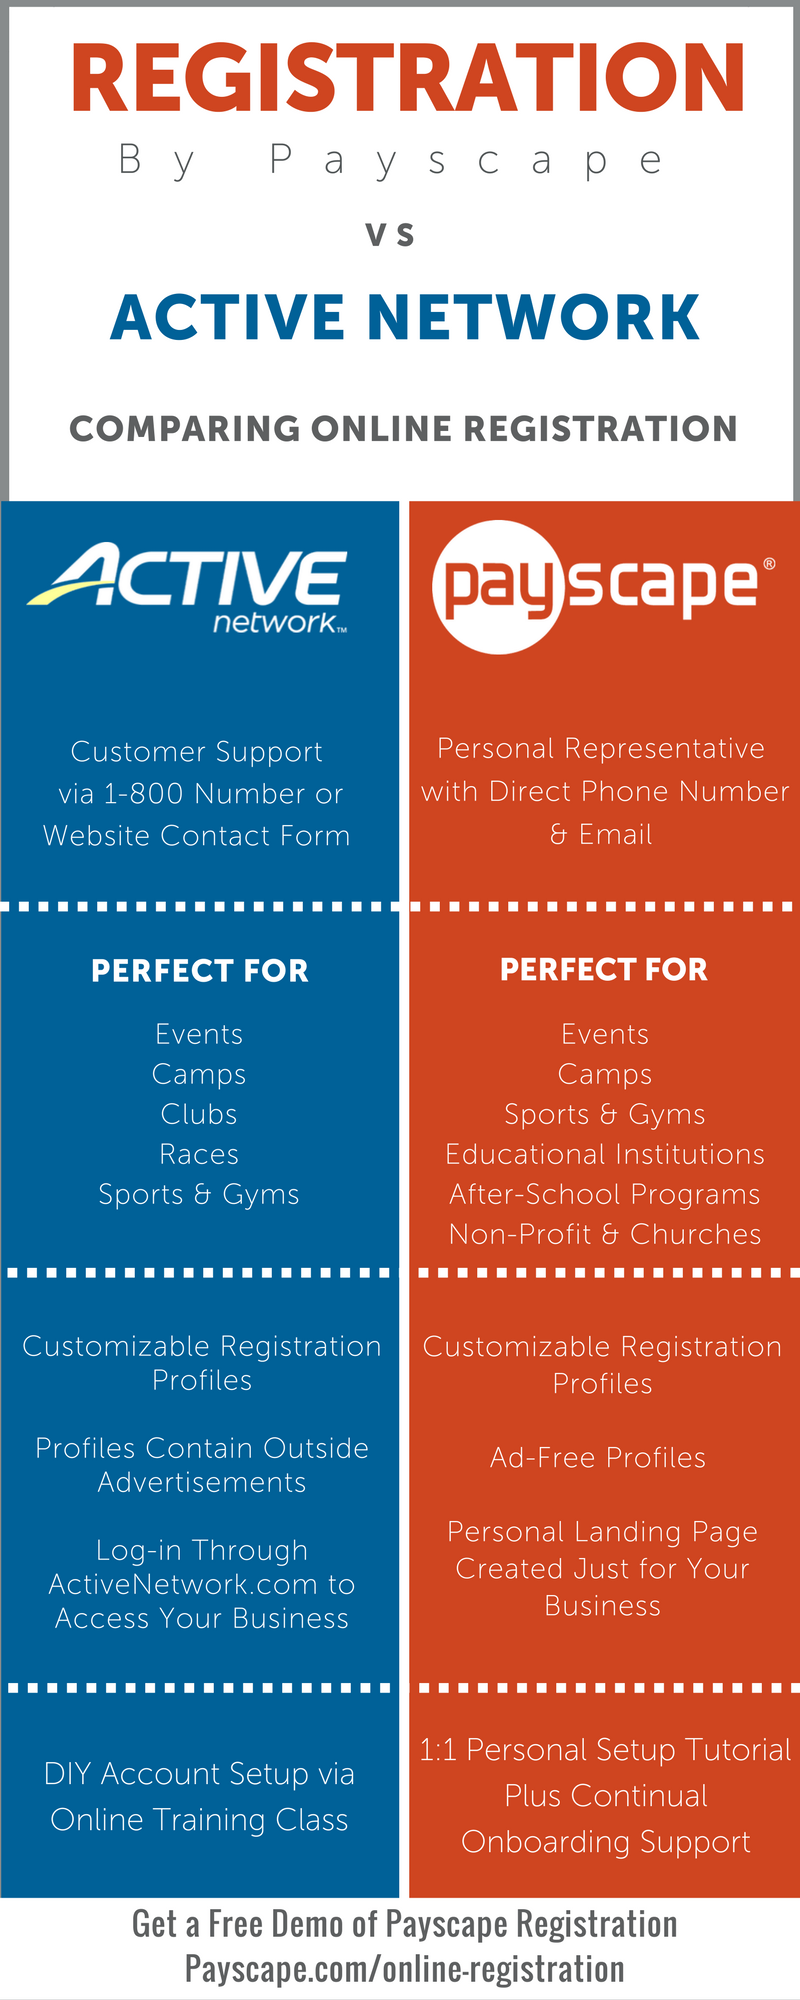 Payscape_Registration-_comparing_Online_Registration_Online_Event_Planning_-_Infographic_FINAL.png